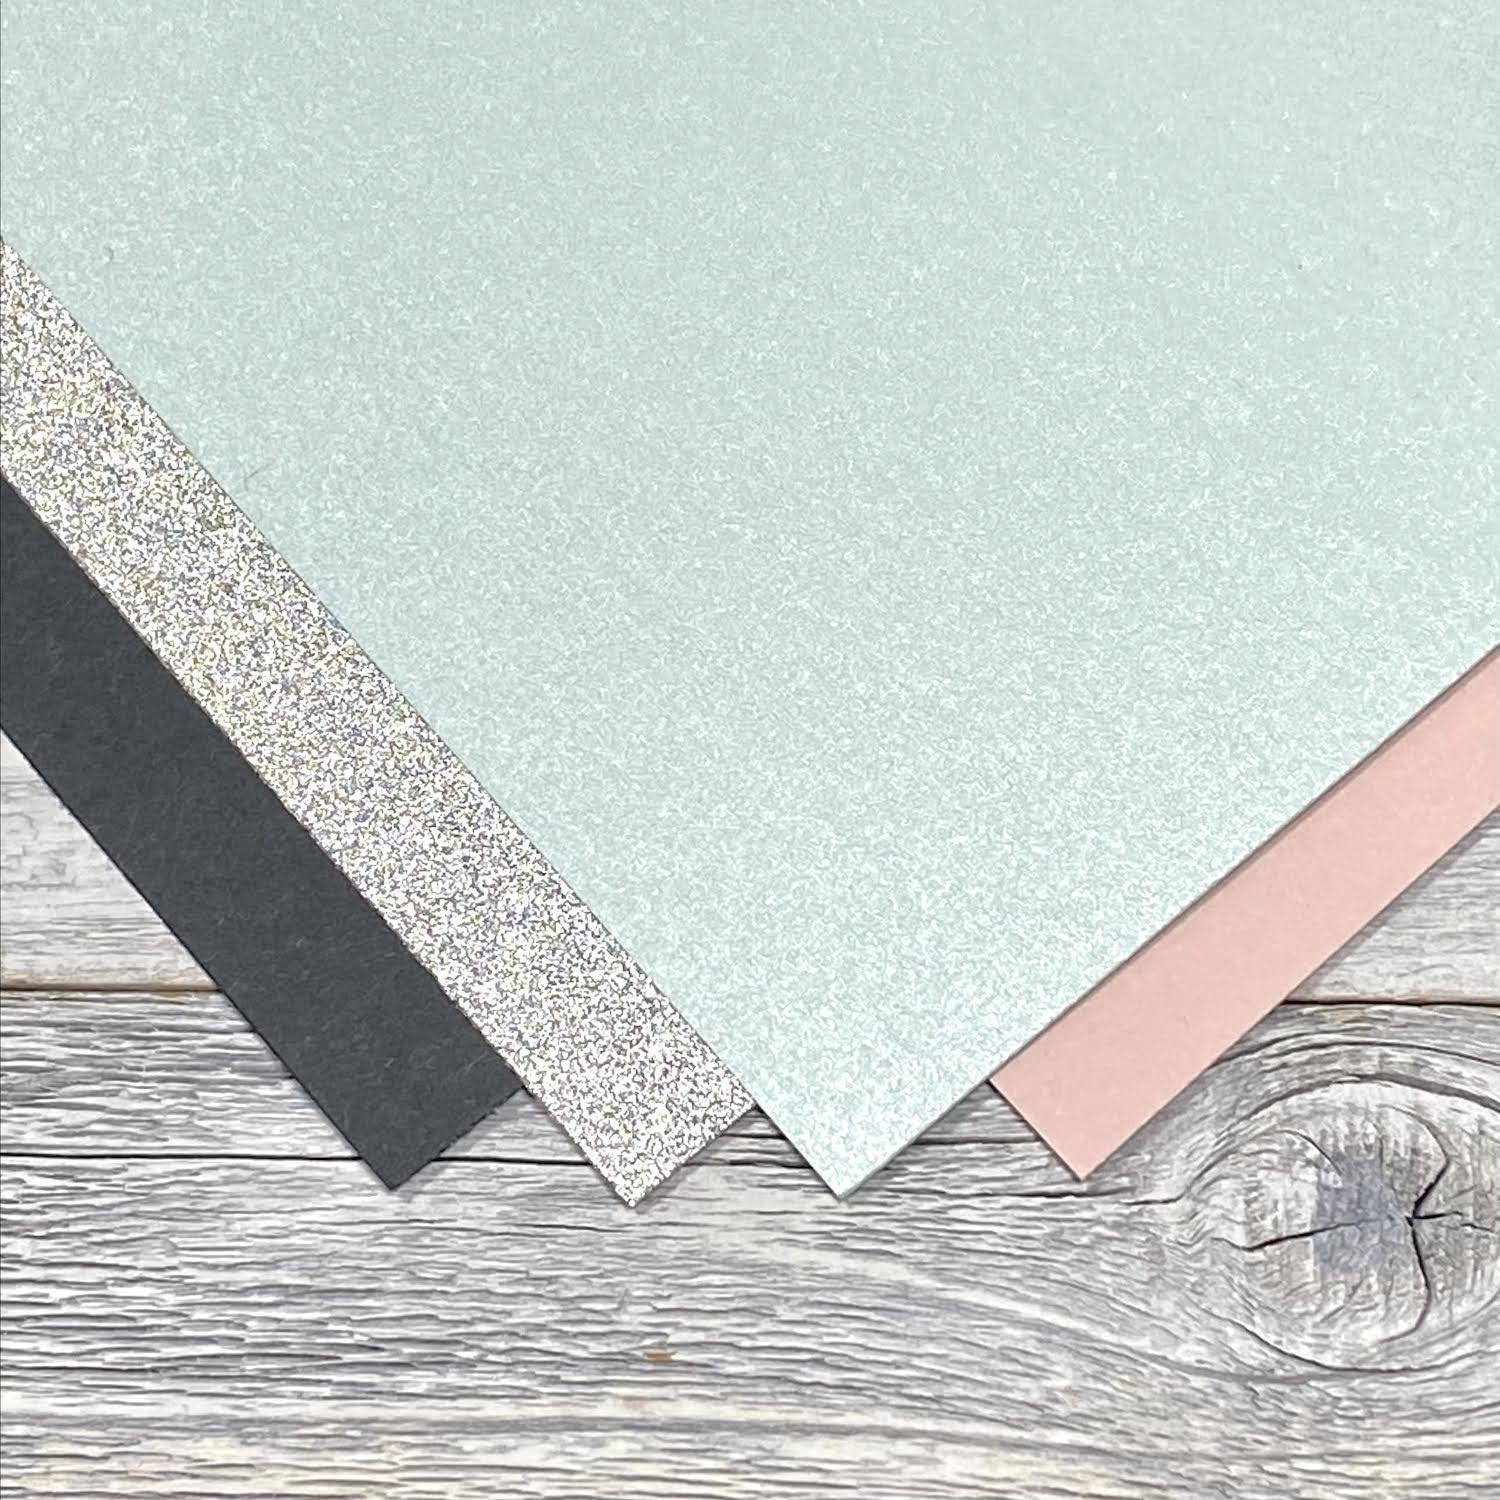 slate, silver sparkle, aquamarine, and nude papers